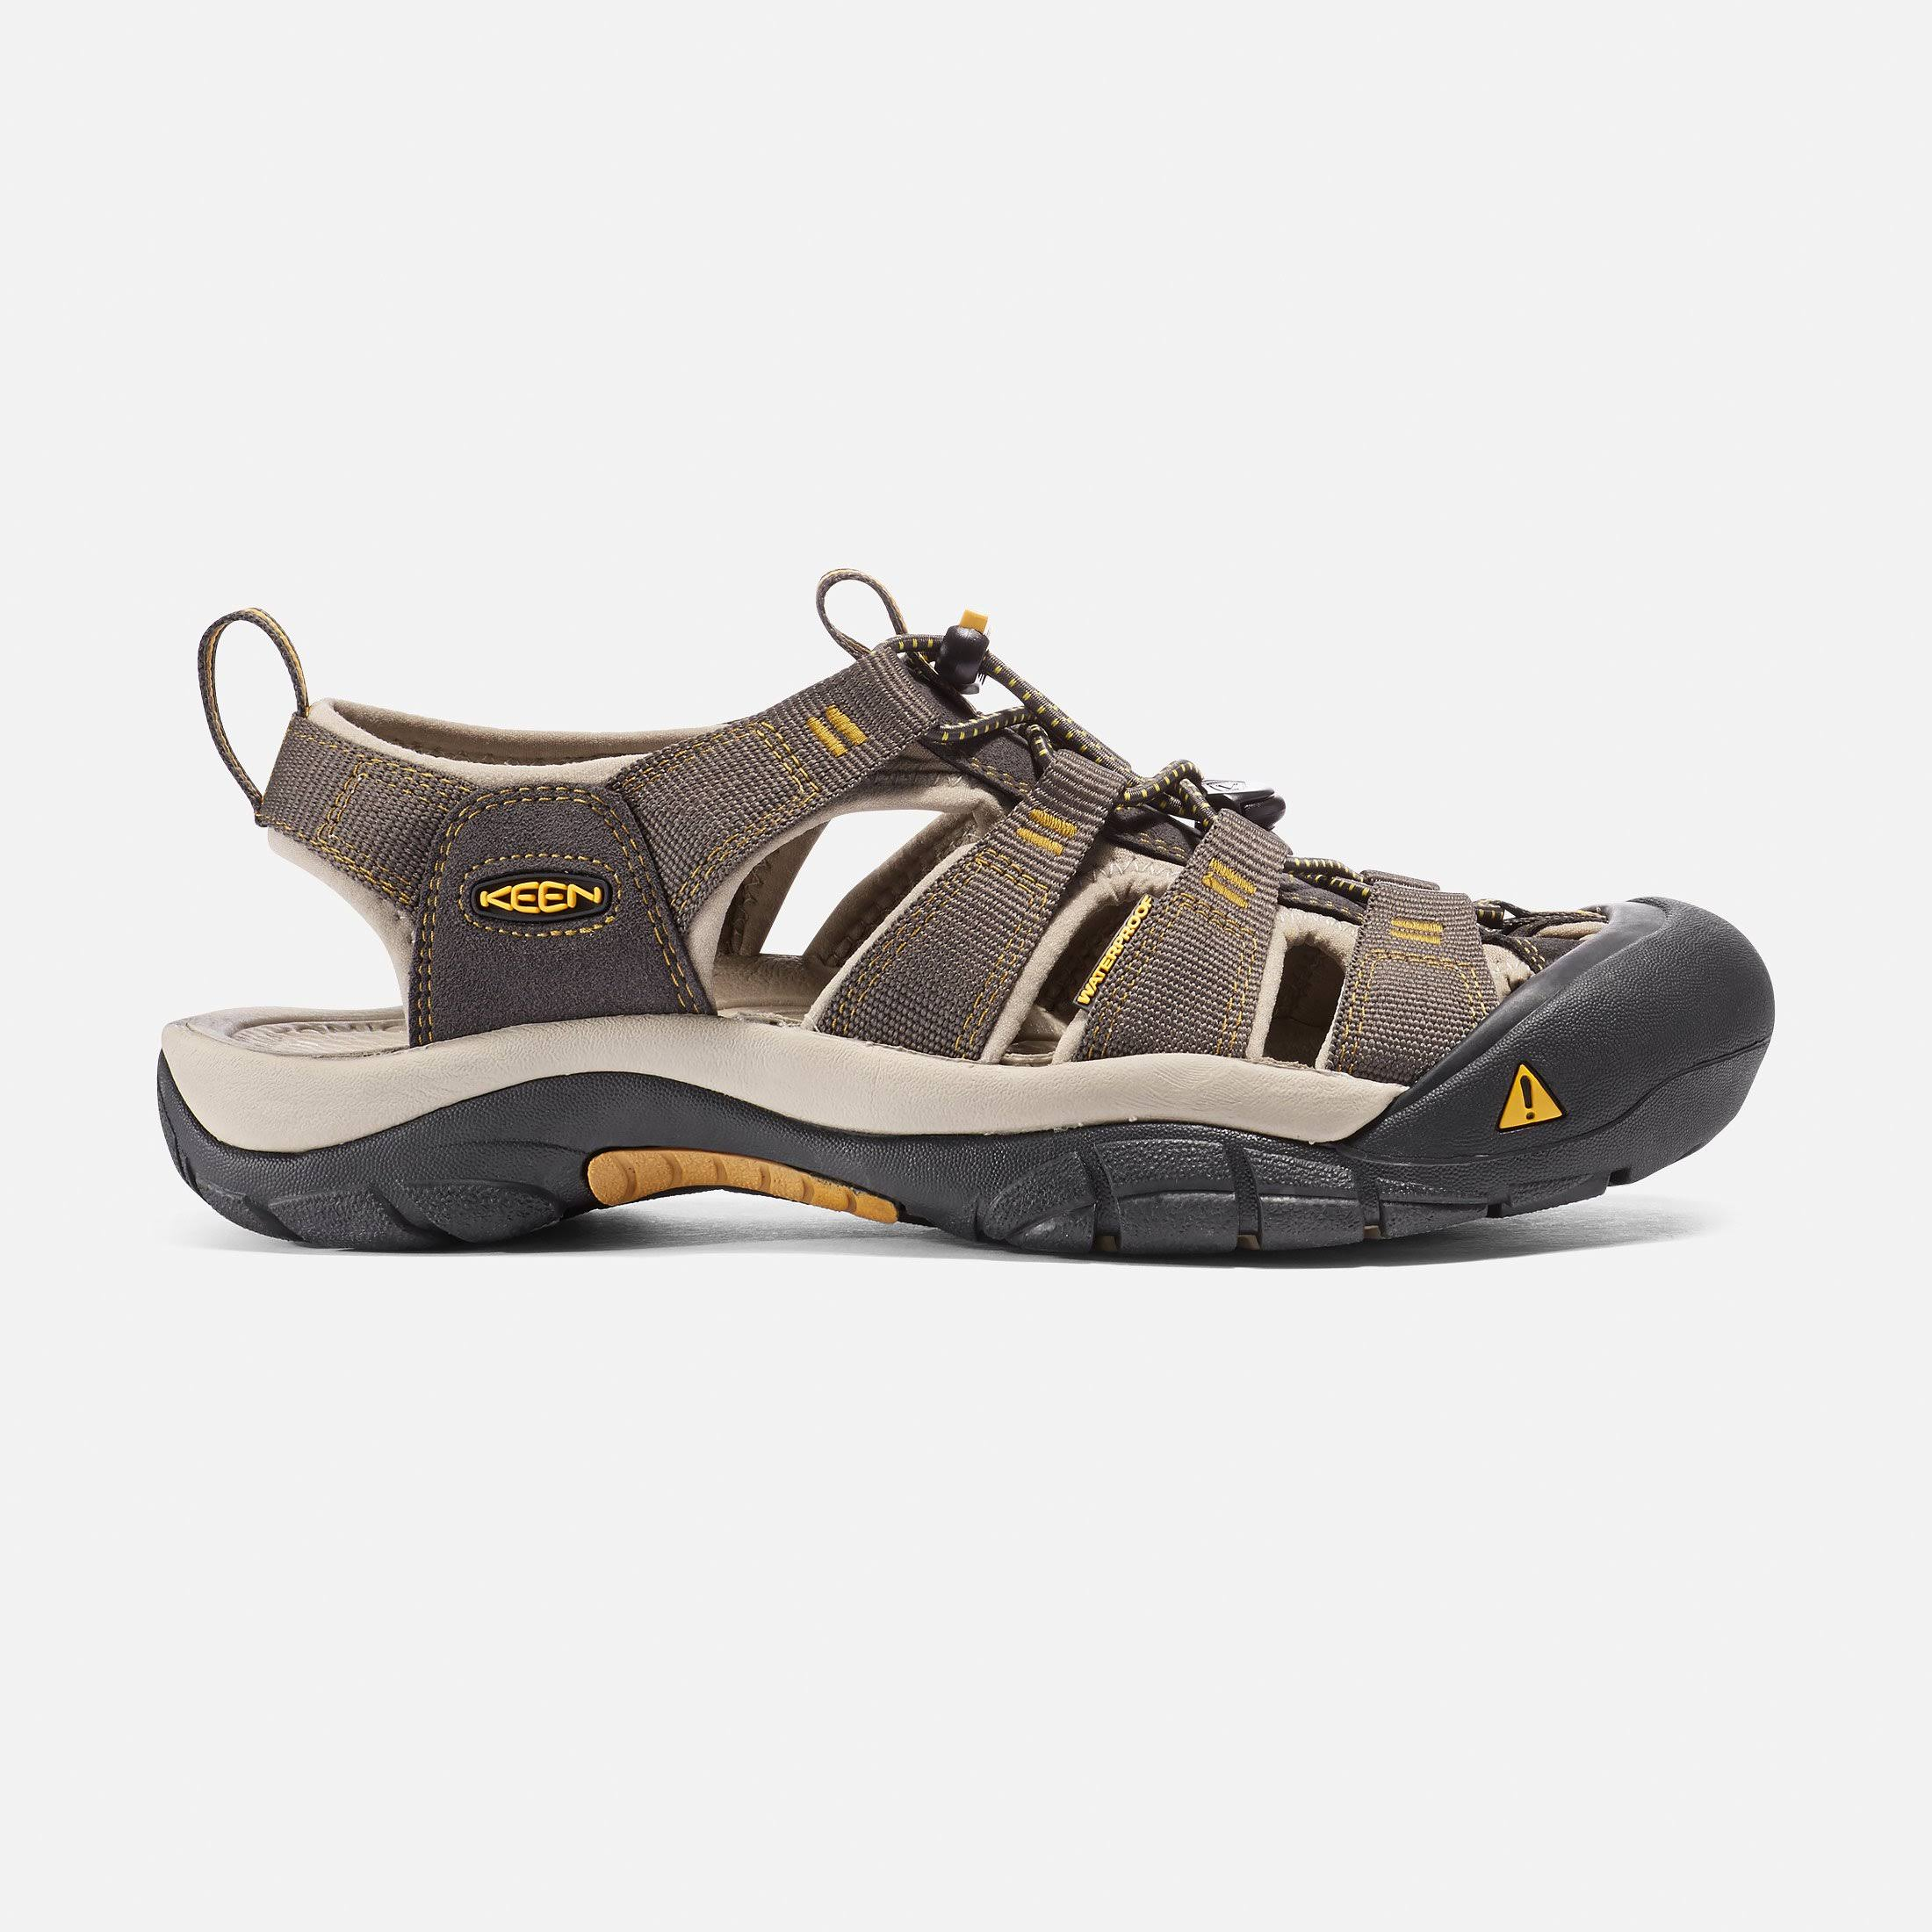 Keen Men's Newport H2 Sandals - Raven/Aluminum, 11.5US